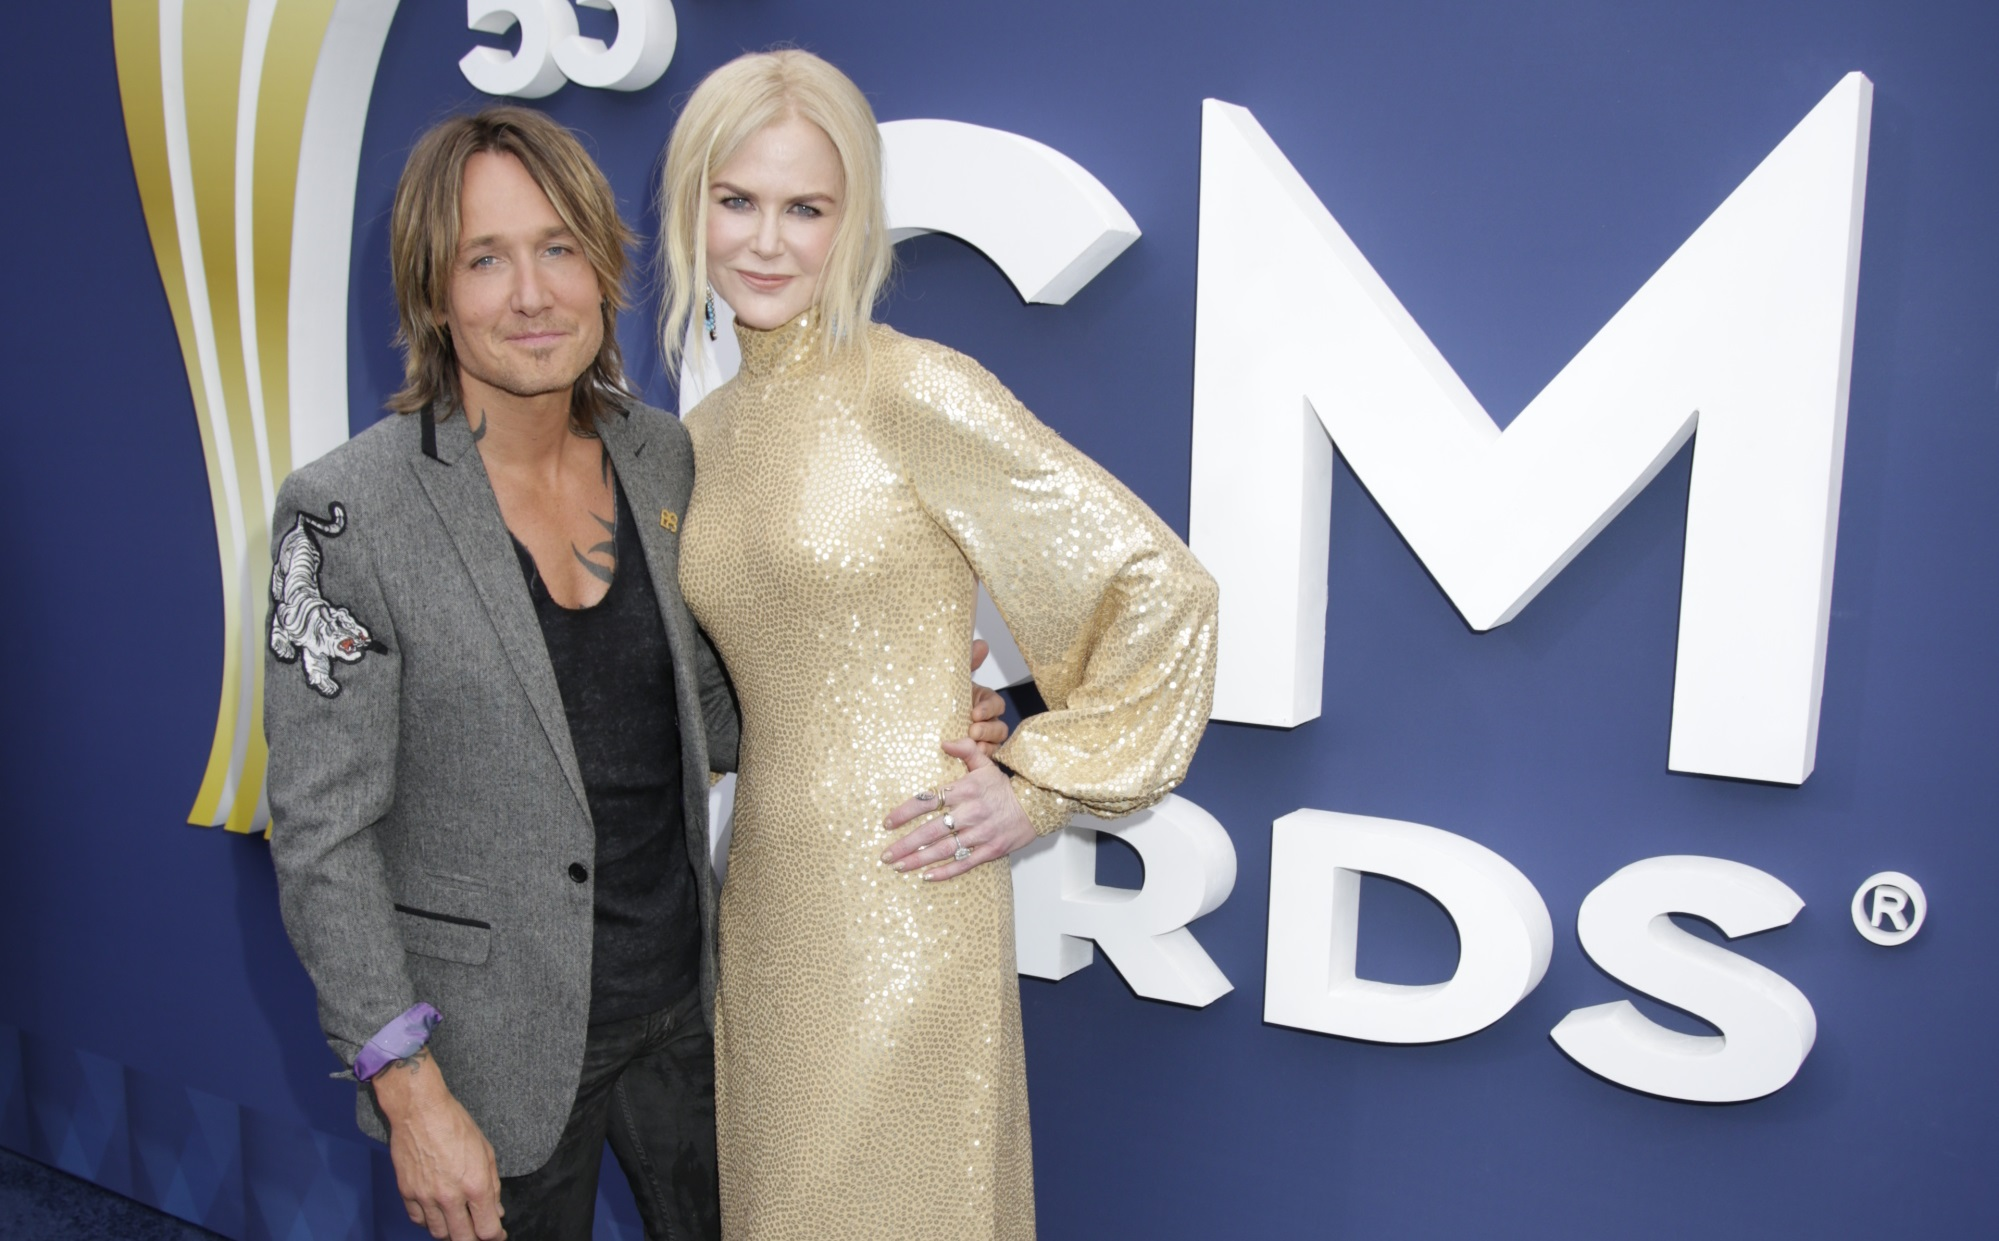 5 Times Keith Urban and Nicole Kidman Were Total #CoupleGoals